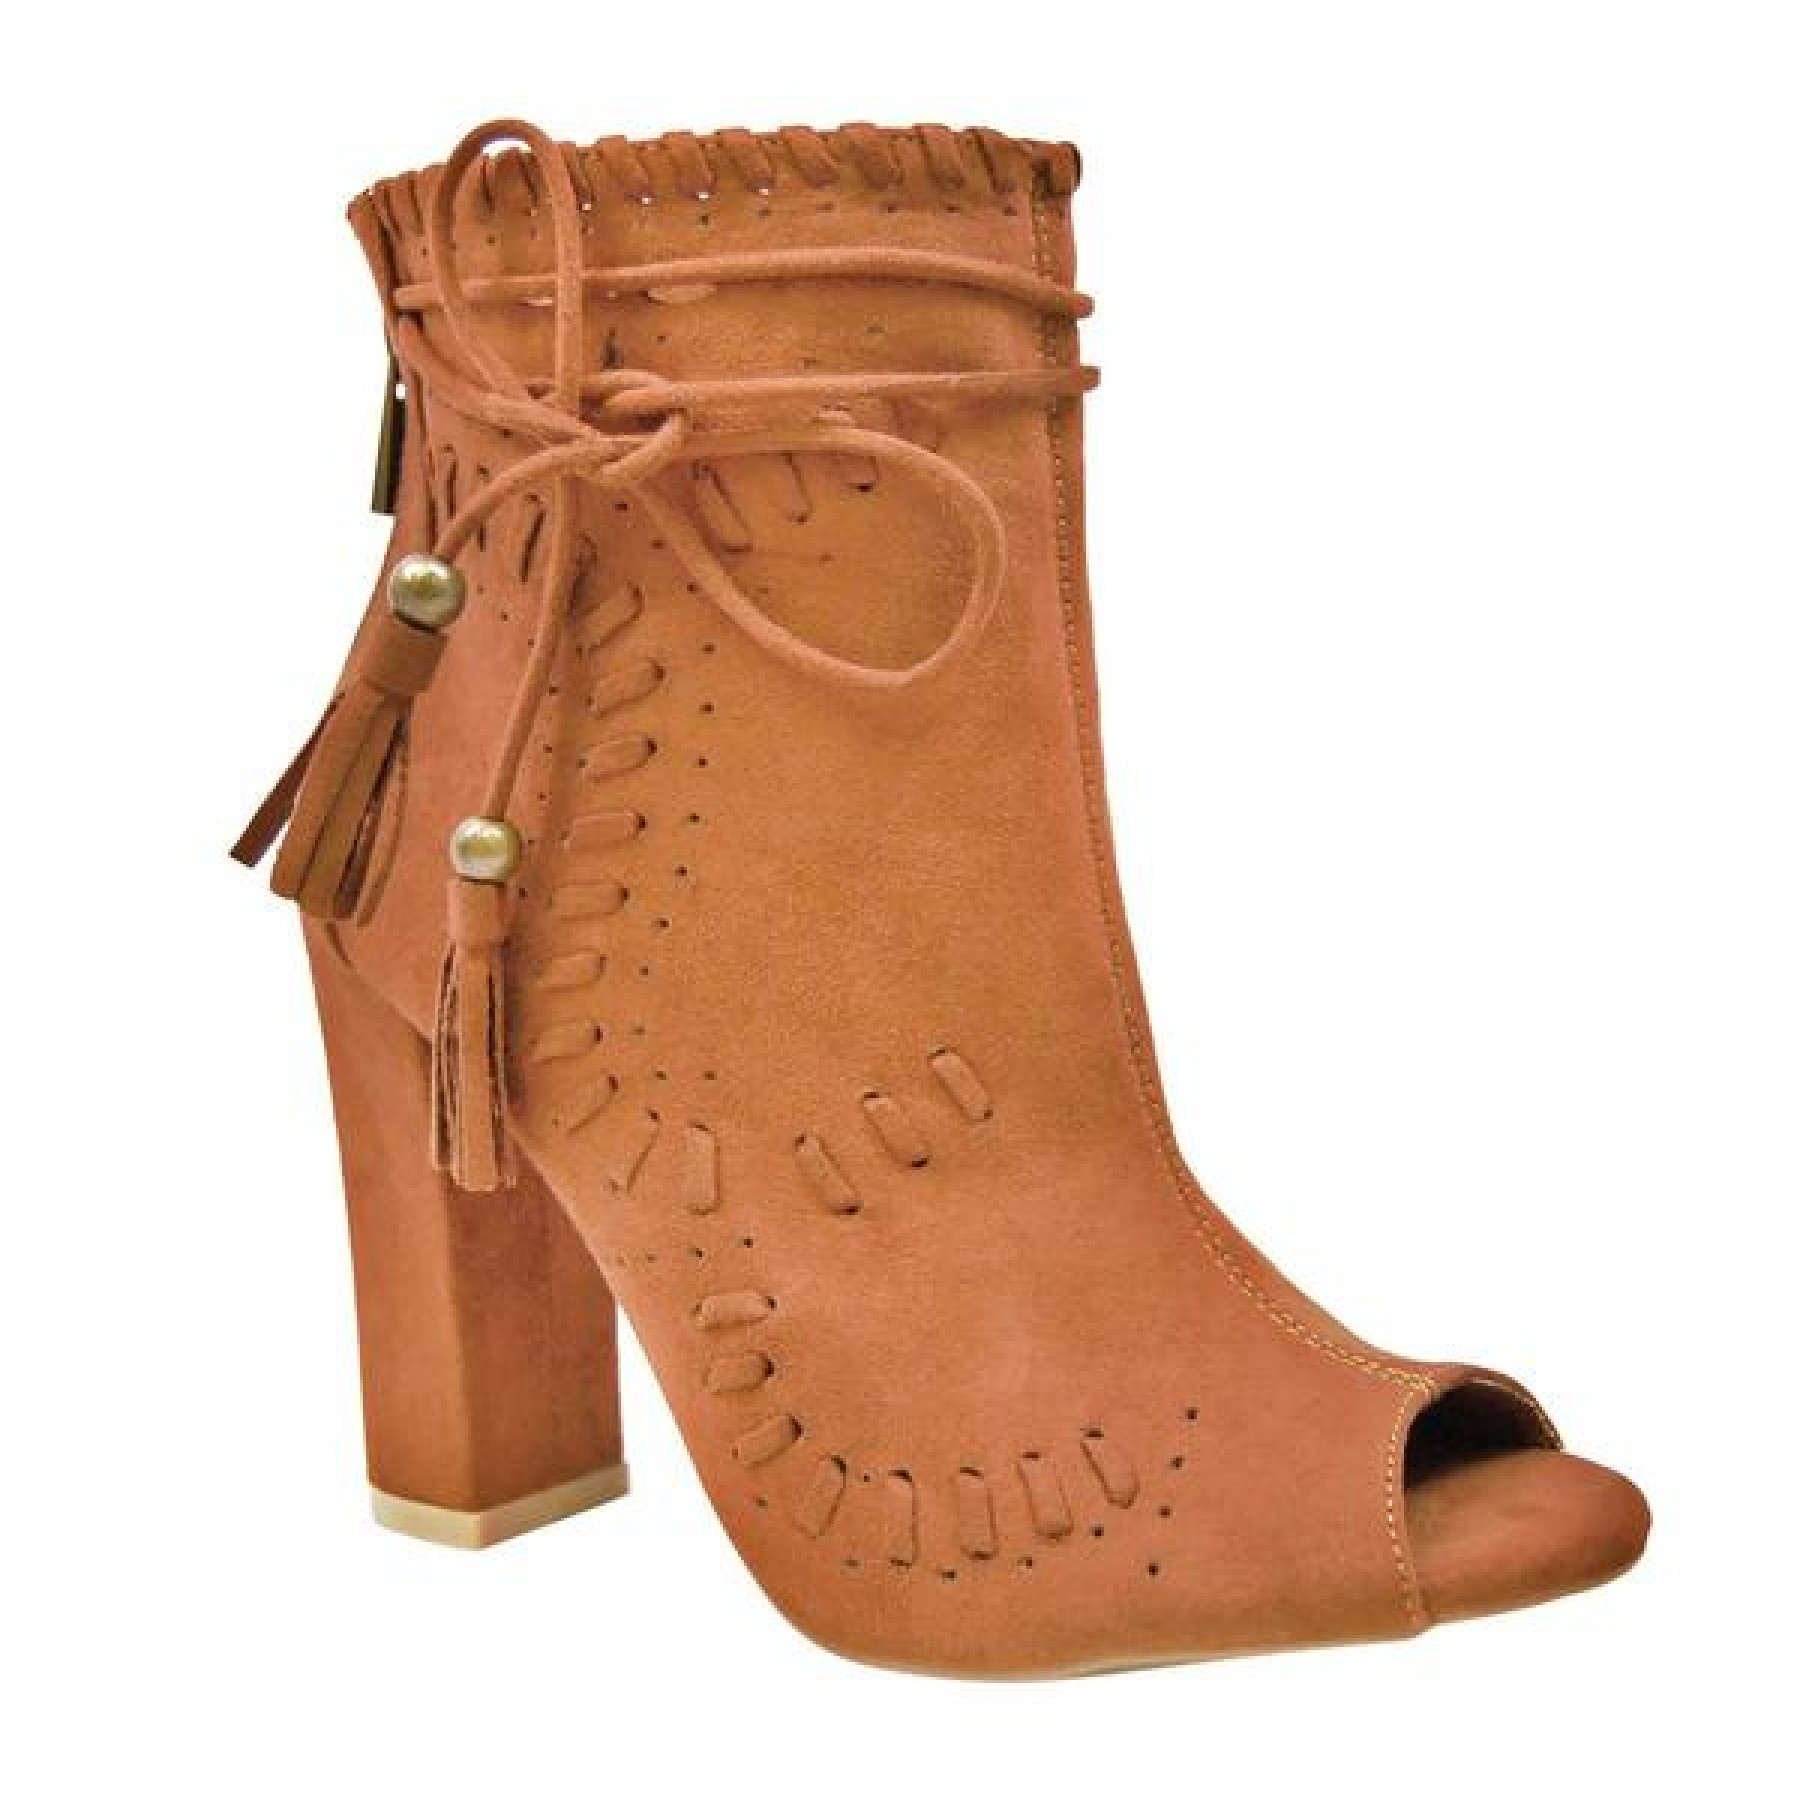 Women's Chestnut Tassel Heel Booties ENCOUNTER